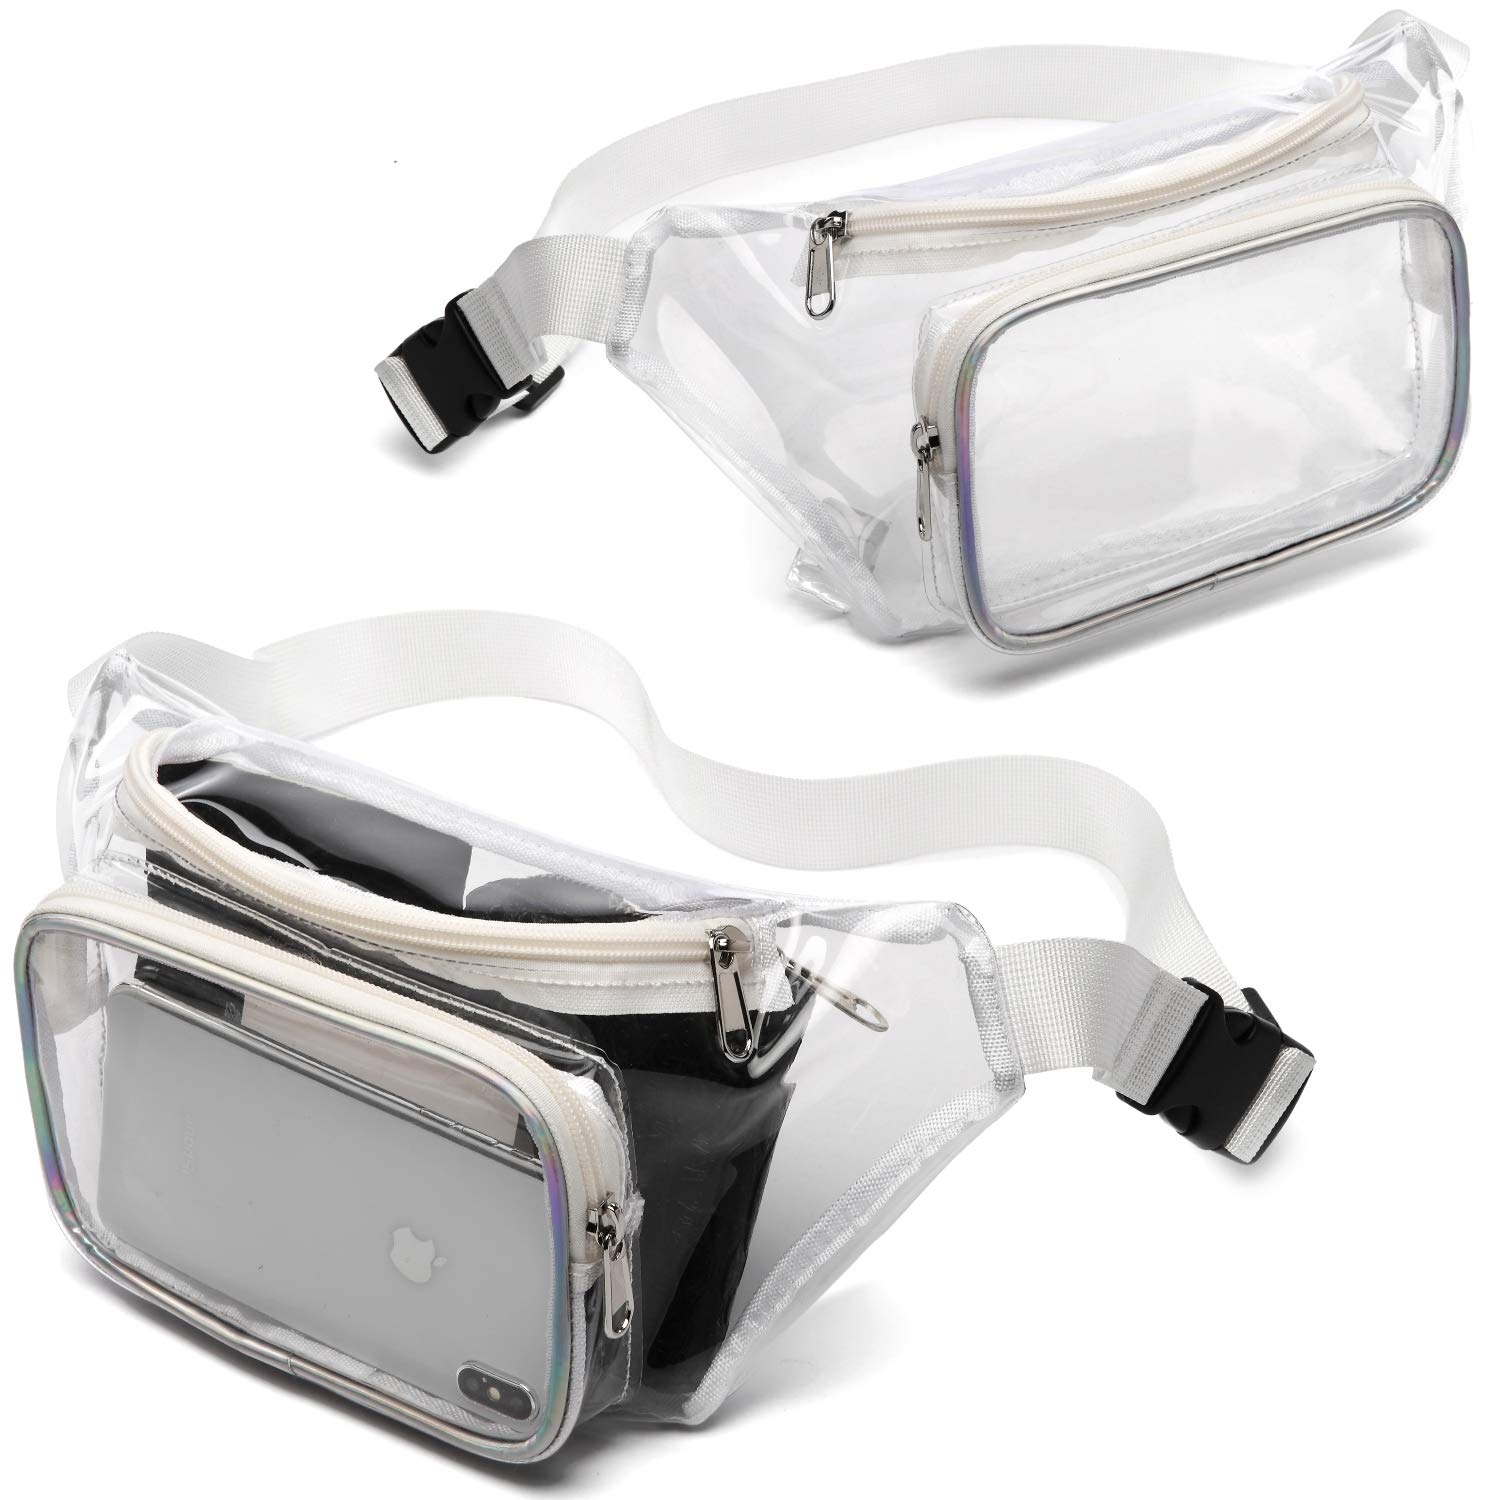 71f1625cea91 Clear Fanny Pack, iSPECLE 2 Pack Clear Bag Approved for NFL, PGA, NCAA,  Adjustable Waist Strap for Clear Purse,White